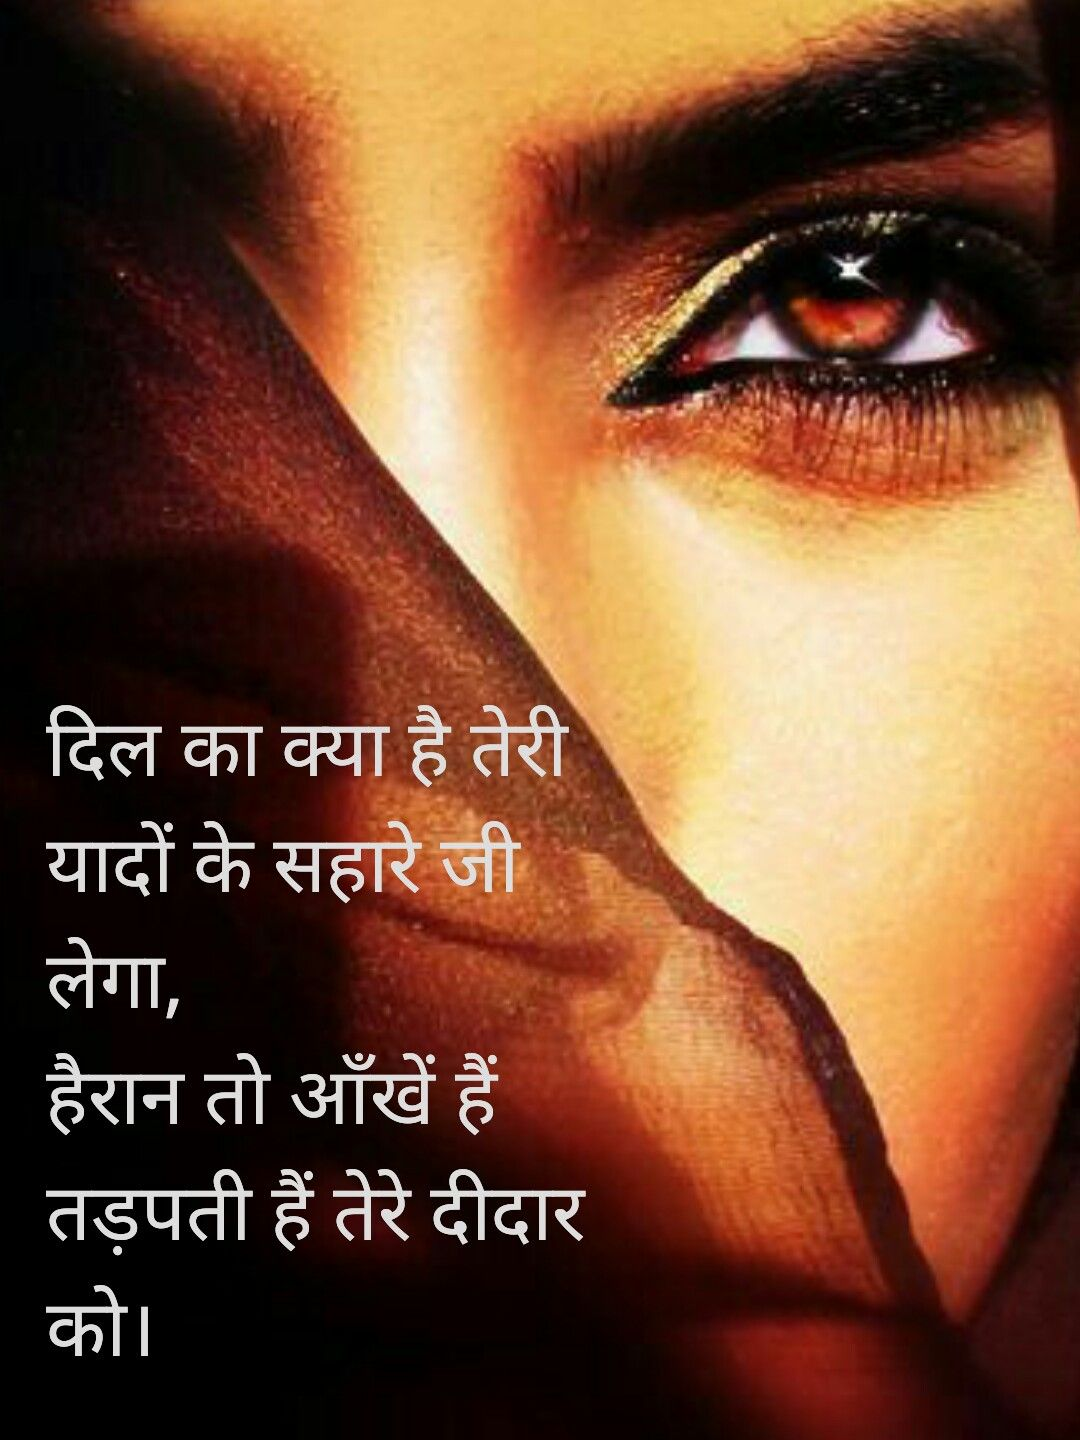 Hindi Shayari Heart Love Memories Hindi Quotes Shayari